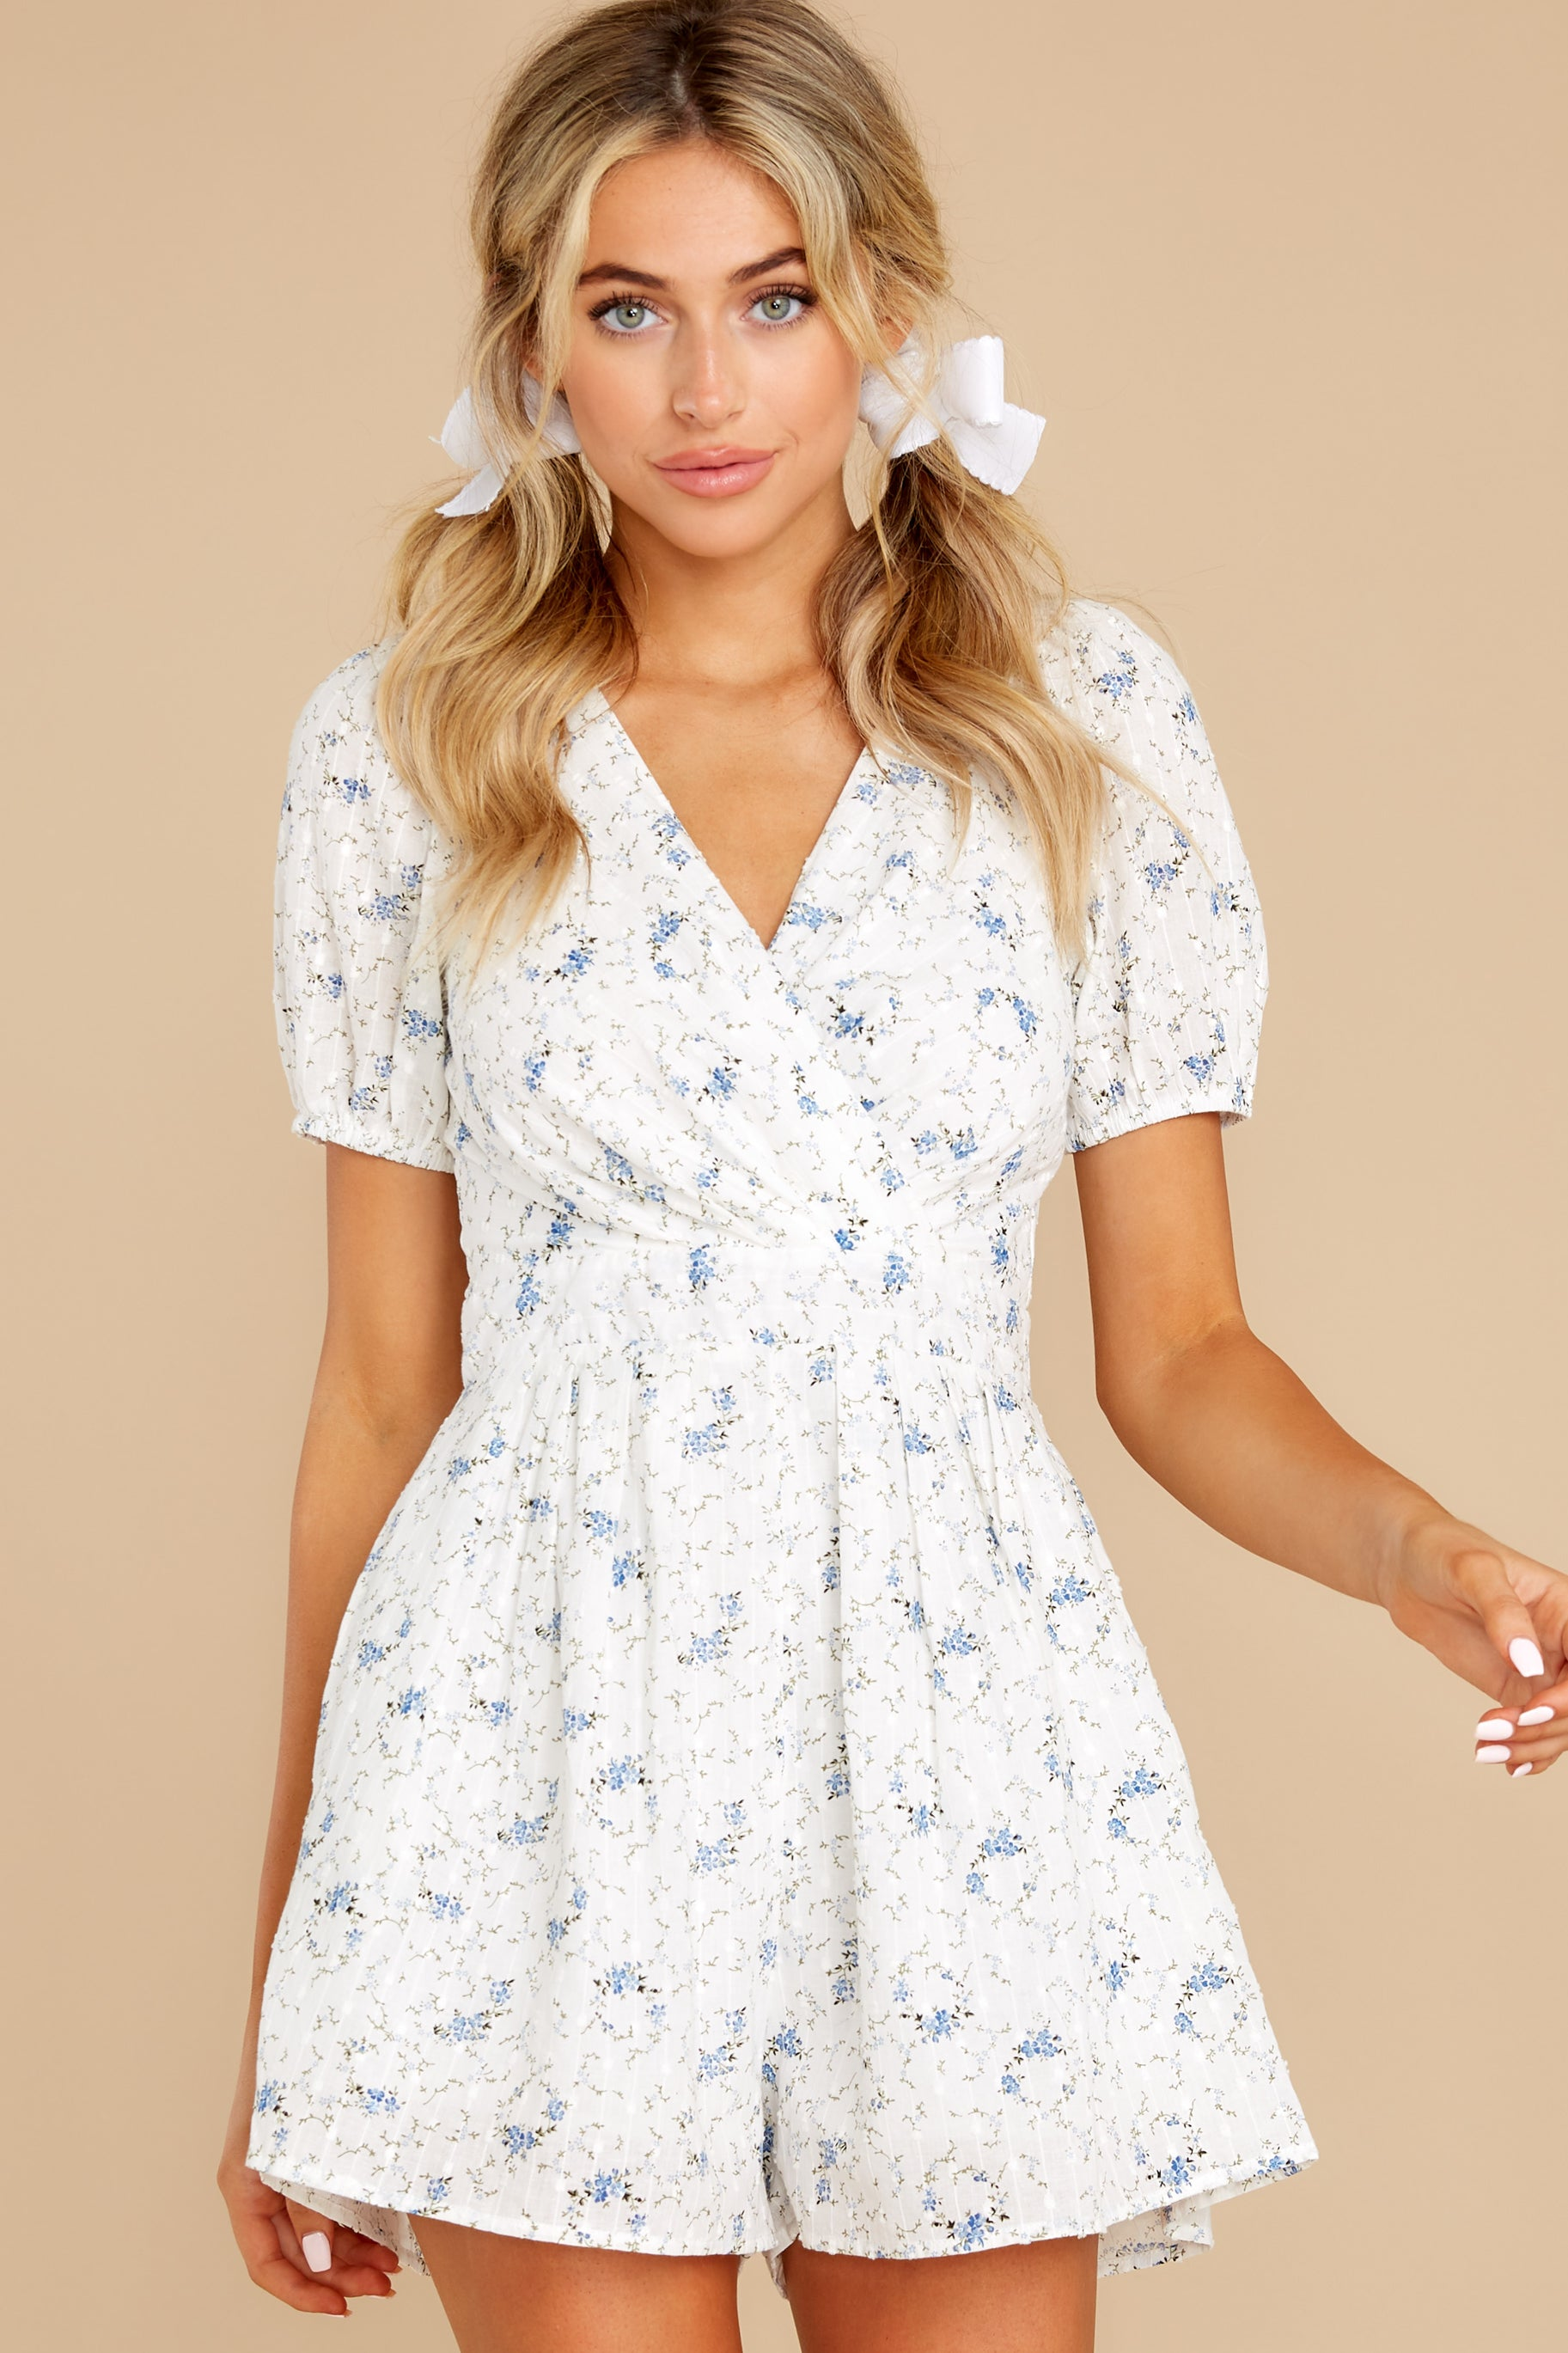 4 No Sweeter Love White Floral Print Romper at reddress.com